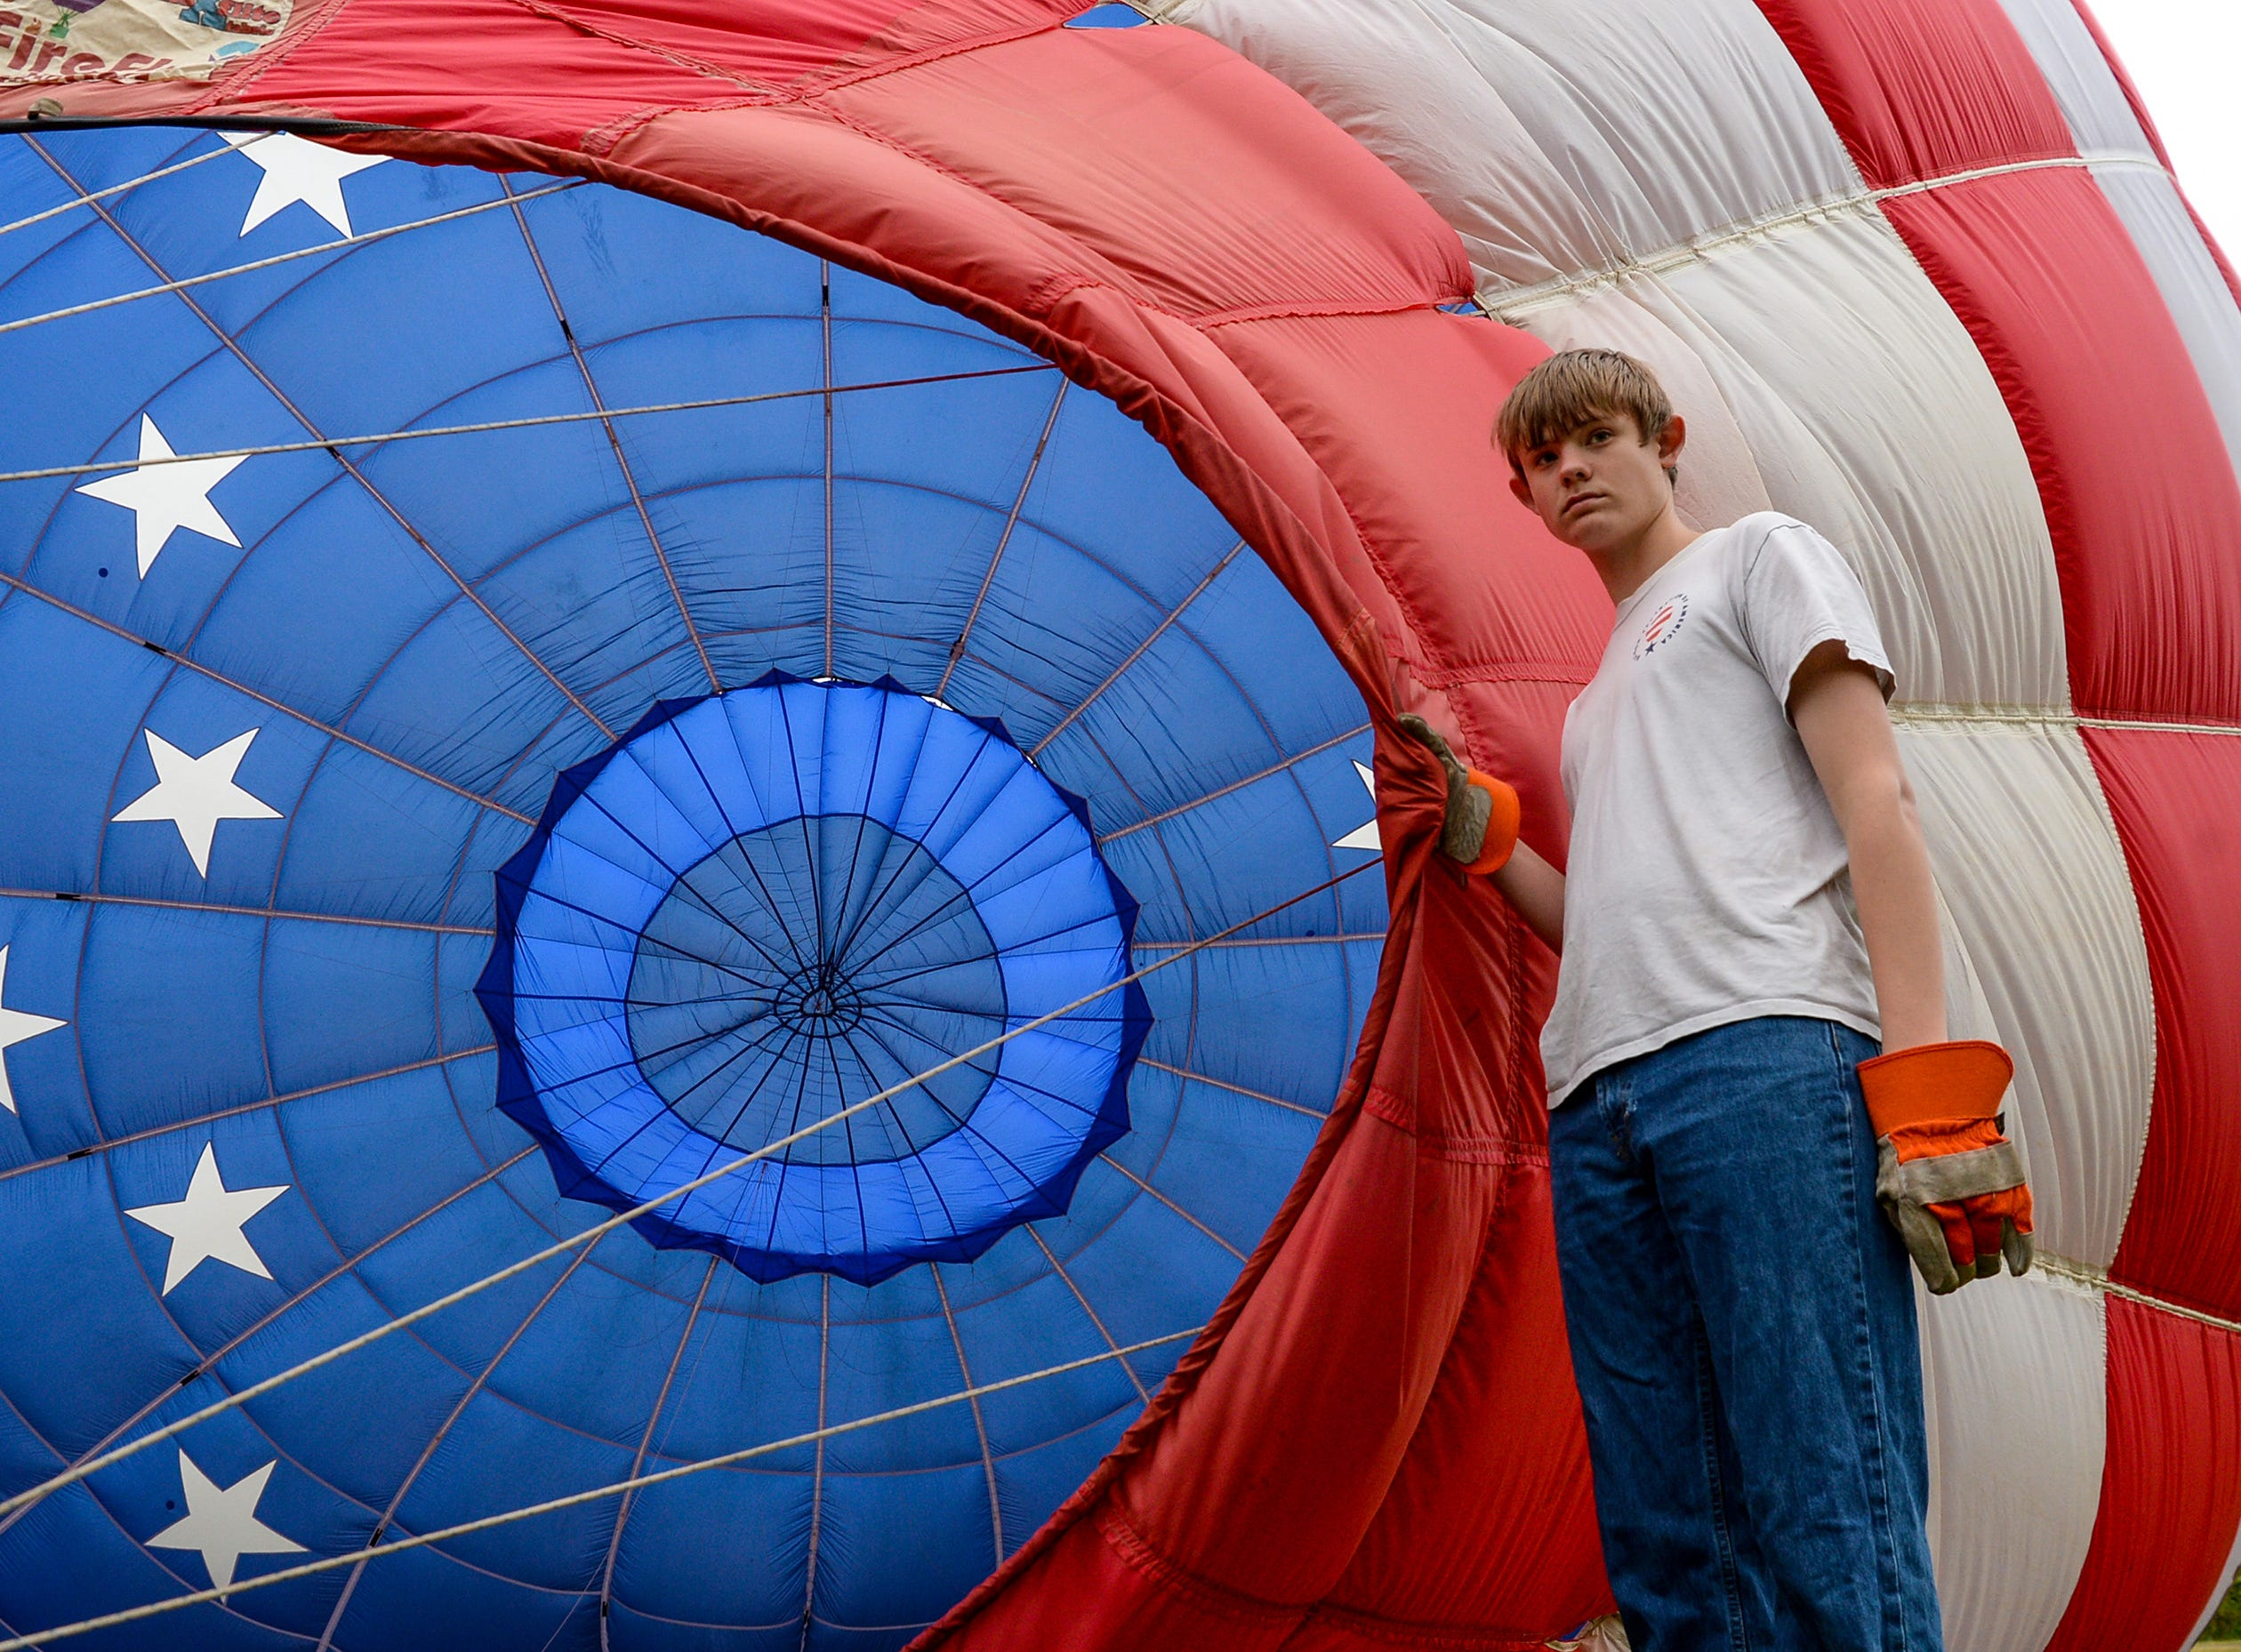 Ryan Sawin of North Carolina helps the Freedom Flyers balloon get inflated before flying over Rocky River Plantation for the Cancer Association of Anderson Hot Air Balloon Affair in Anderson Friday. The event fundraiser helps the non-profit with helping cancer patients with financial needs and support, which the group executive director Angela Stringer said had 5,000 contacts.